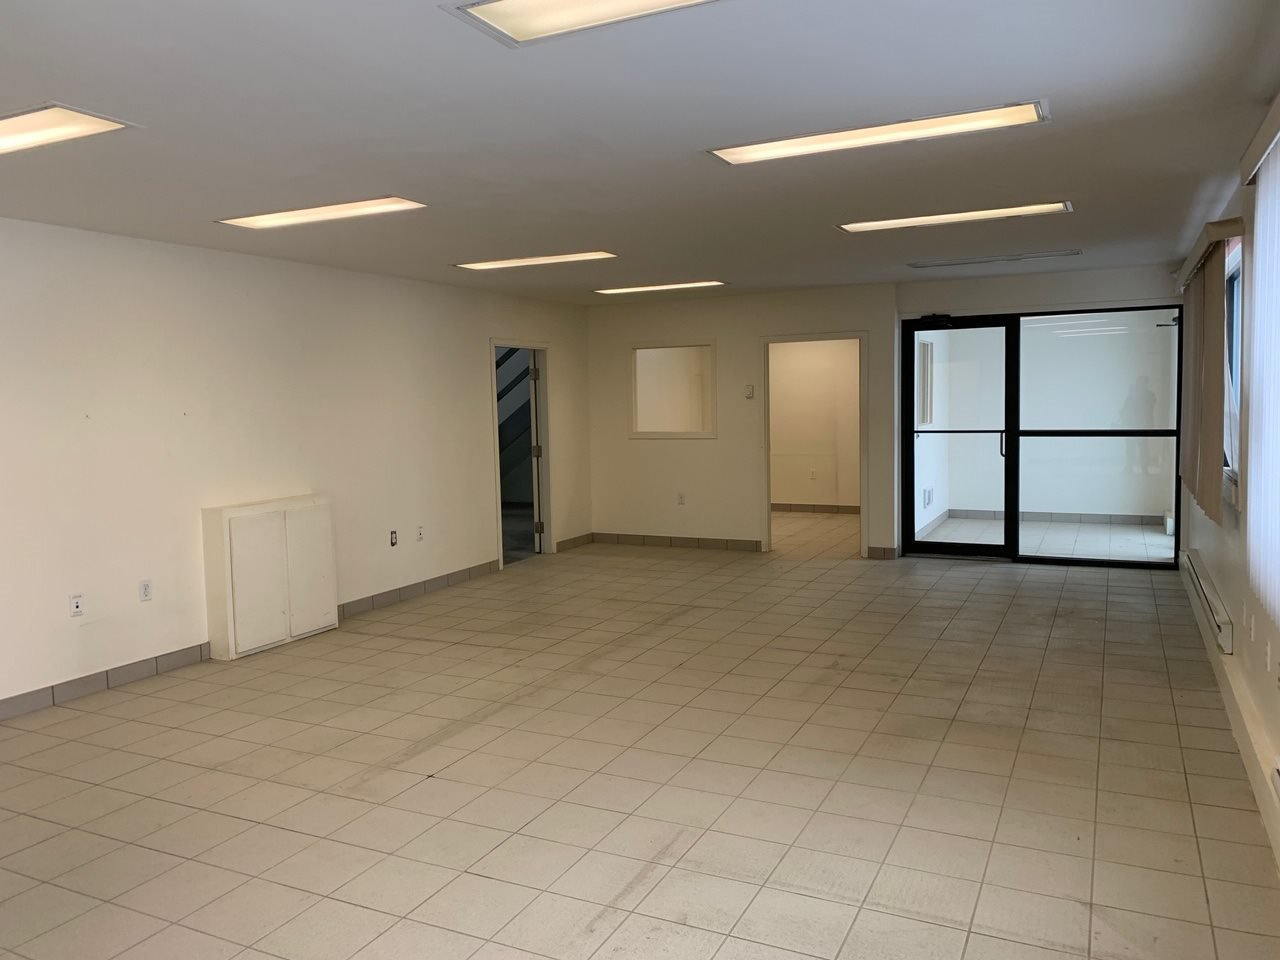 Photo 3: Photos: 9624 SIKANNI Road in Fort St. John: Fort St. John - City SE Industrial for lease (Fort St. John (Zone 60))  : MLS®# C8029456